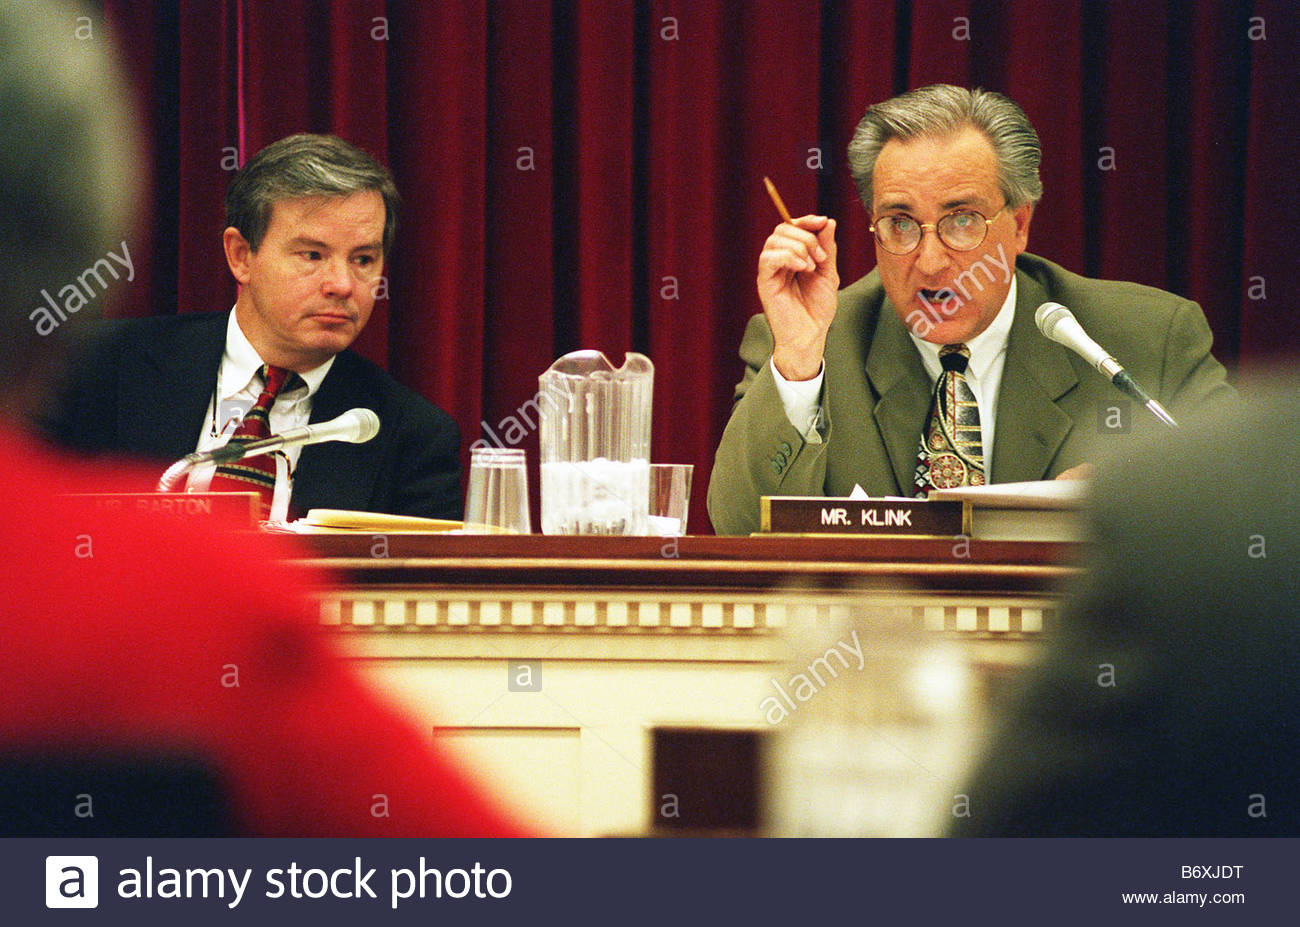 10 23 97 ENERGY DEPARTMENT HEARING House Commerce Oversight Subcommittee  Chairman Joe Barton R Texas And Ranking Member Ron Klink D Pa During  Questioning Of ...